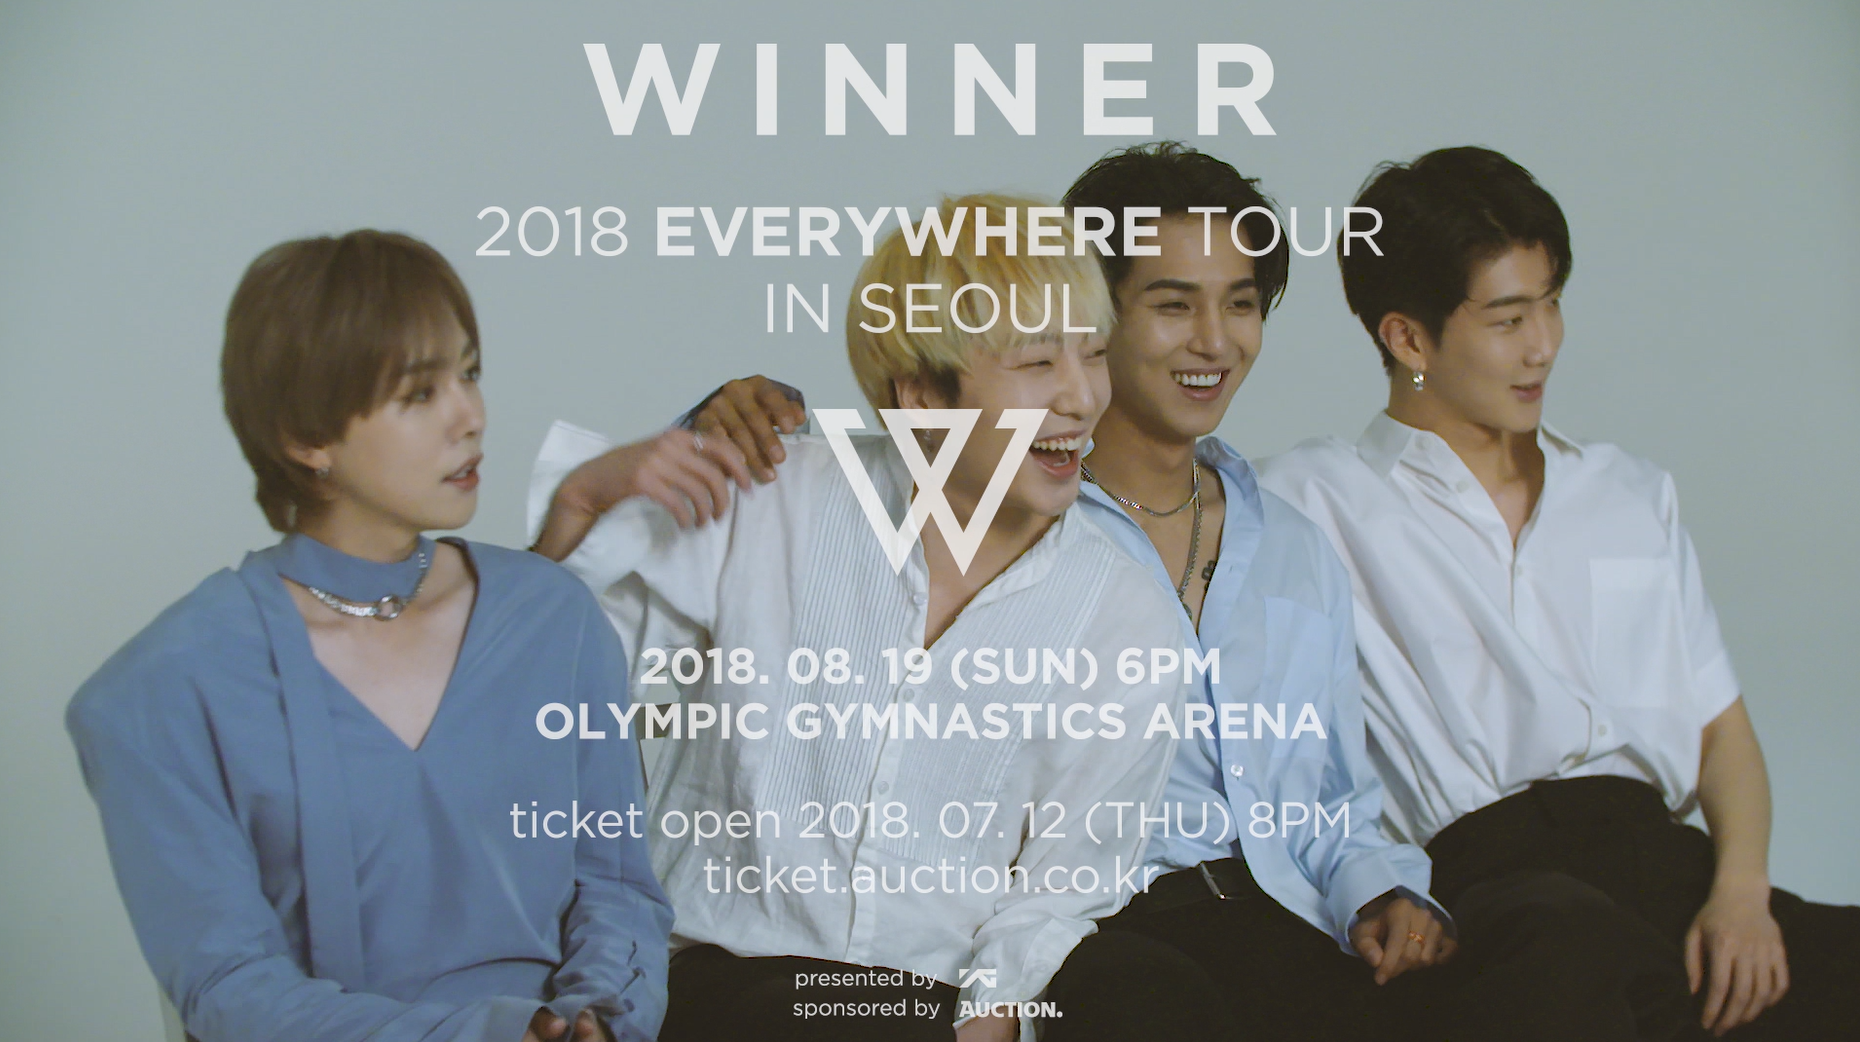 WINNER - 'EVERYWHERE TOUR' MESSAGE FROM WINNER